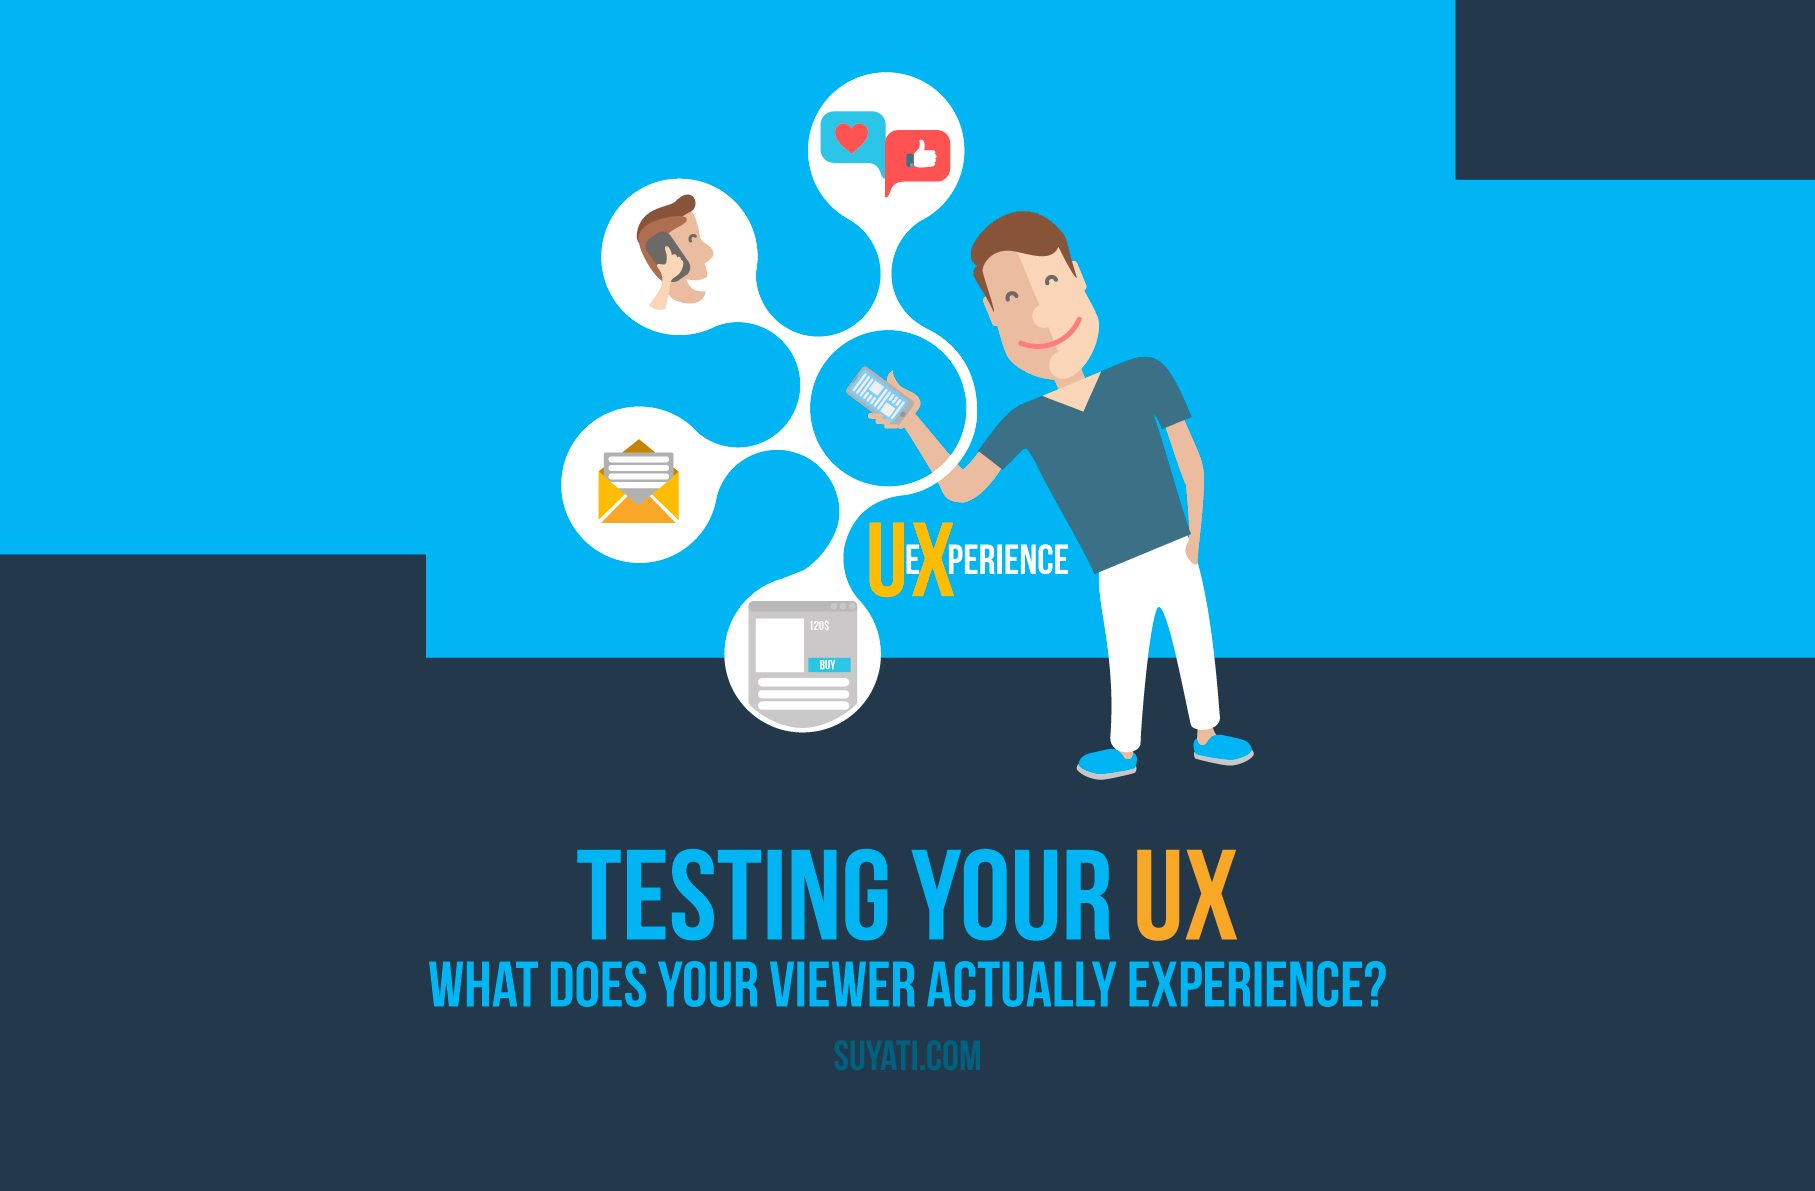 testing-ux-to-understand-what-does-your-viewer-actually-experience